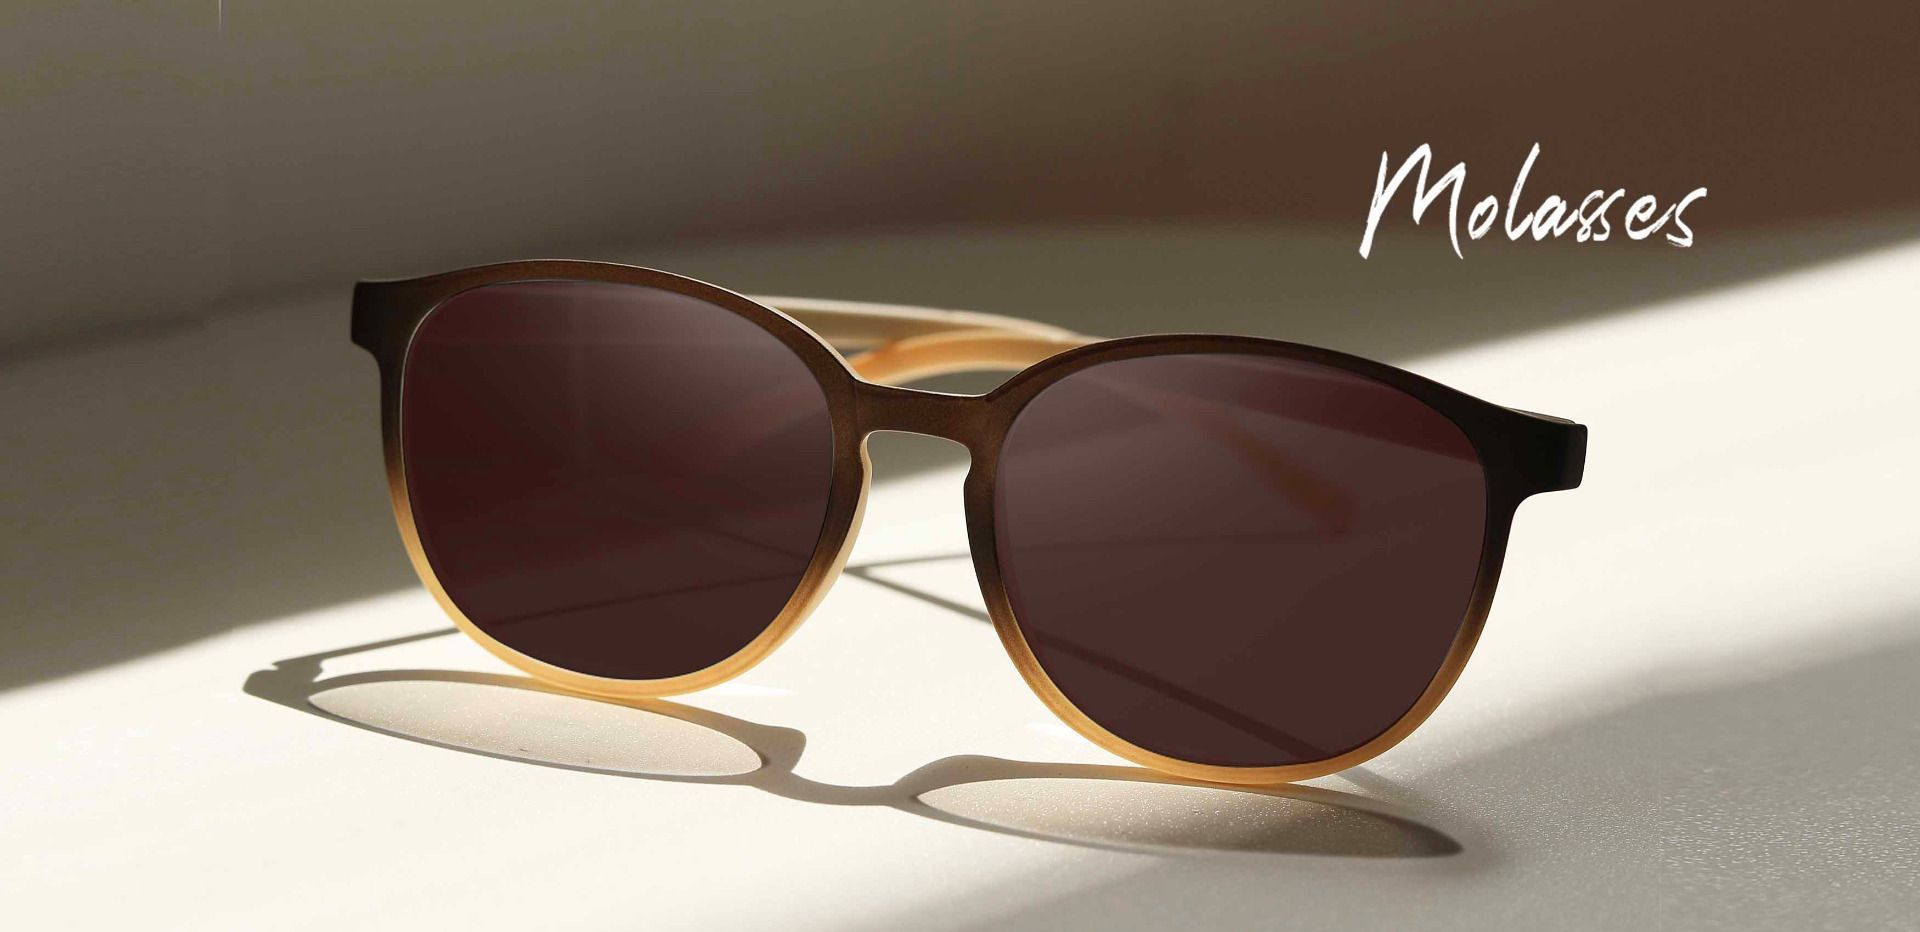 Molasses Oval Prescription Sunglasses - Brown Frame With Brown Lenses